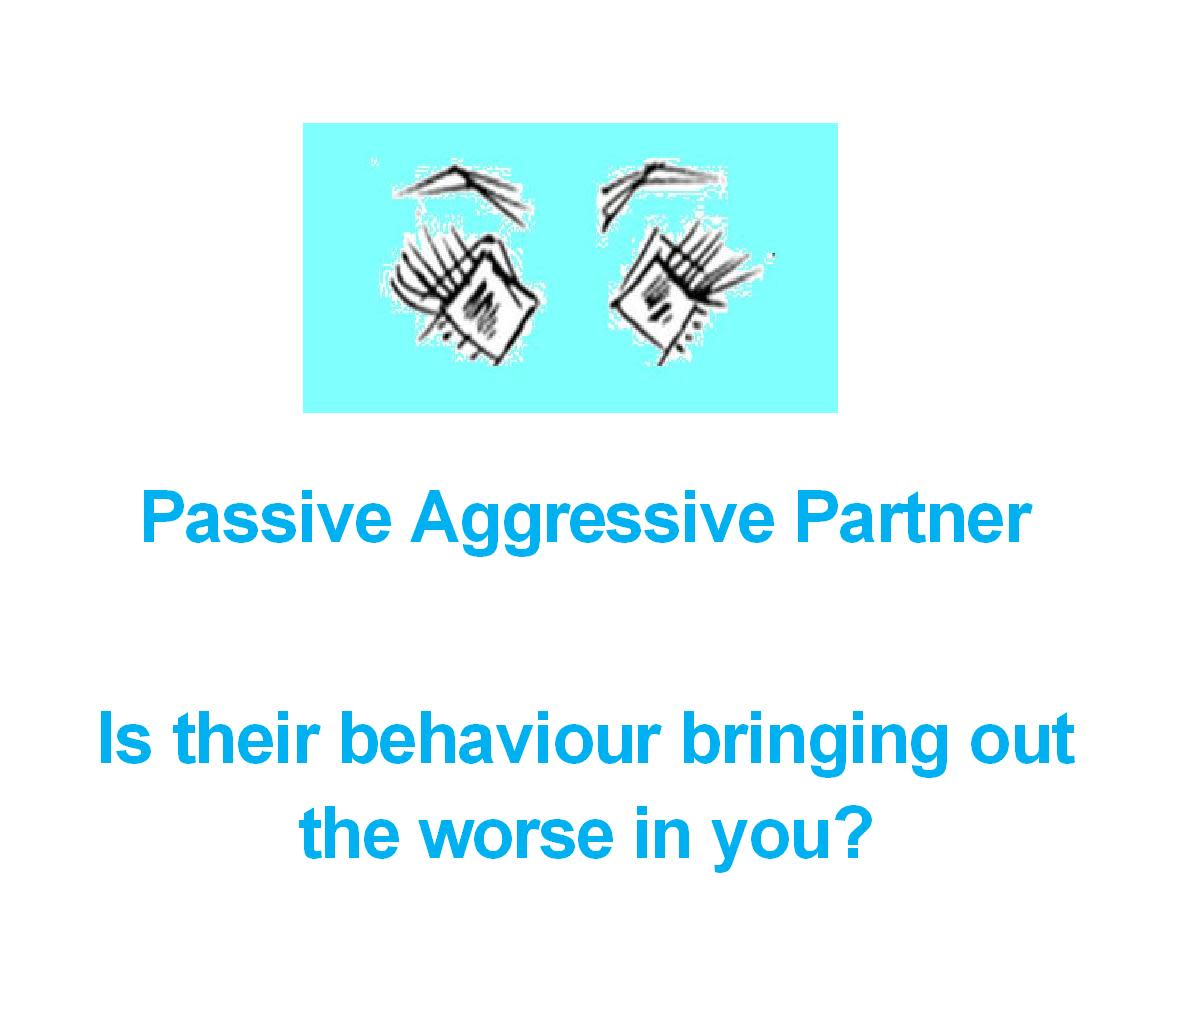 Passive Aggressive Partner – Is their behavior bringing out the worst in you?